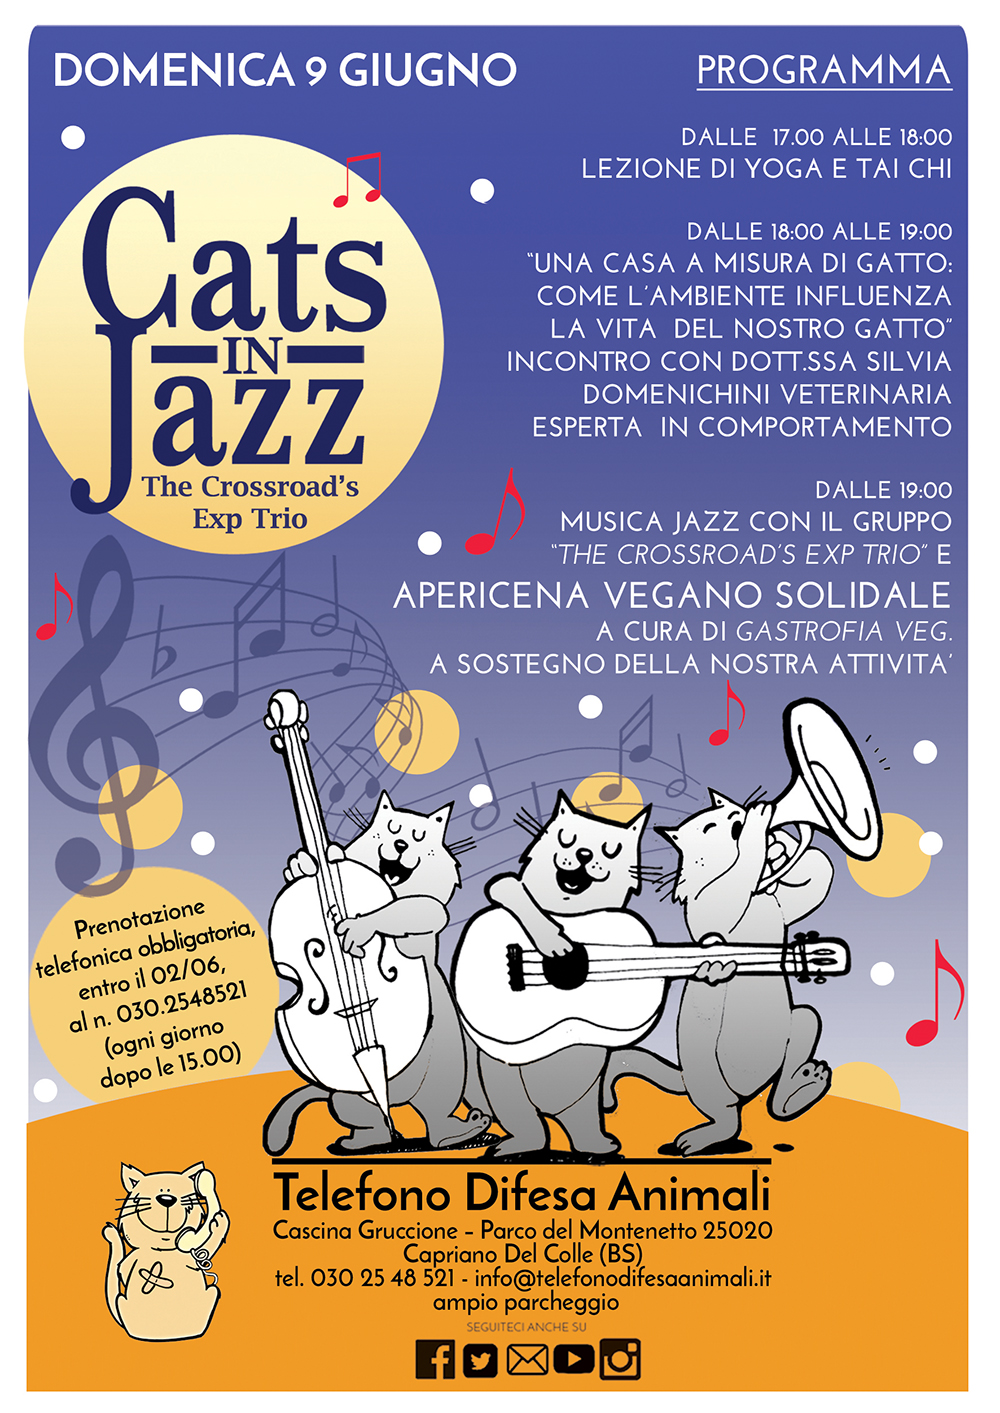 Cats in jazz - apericena solidale in gattile